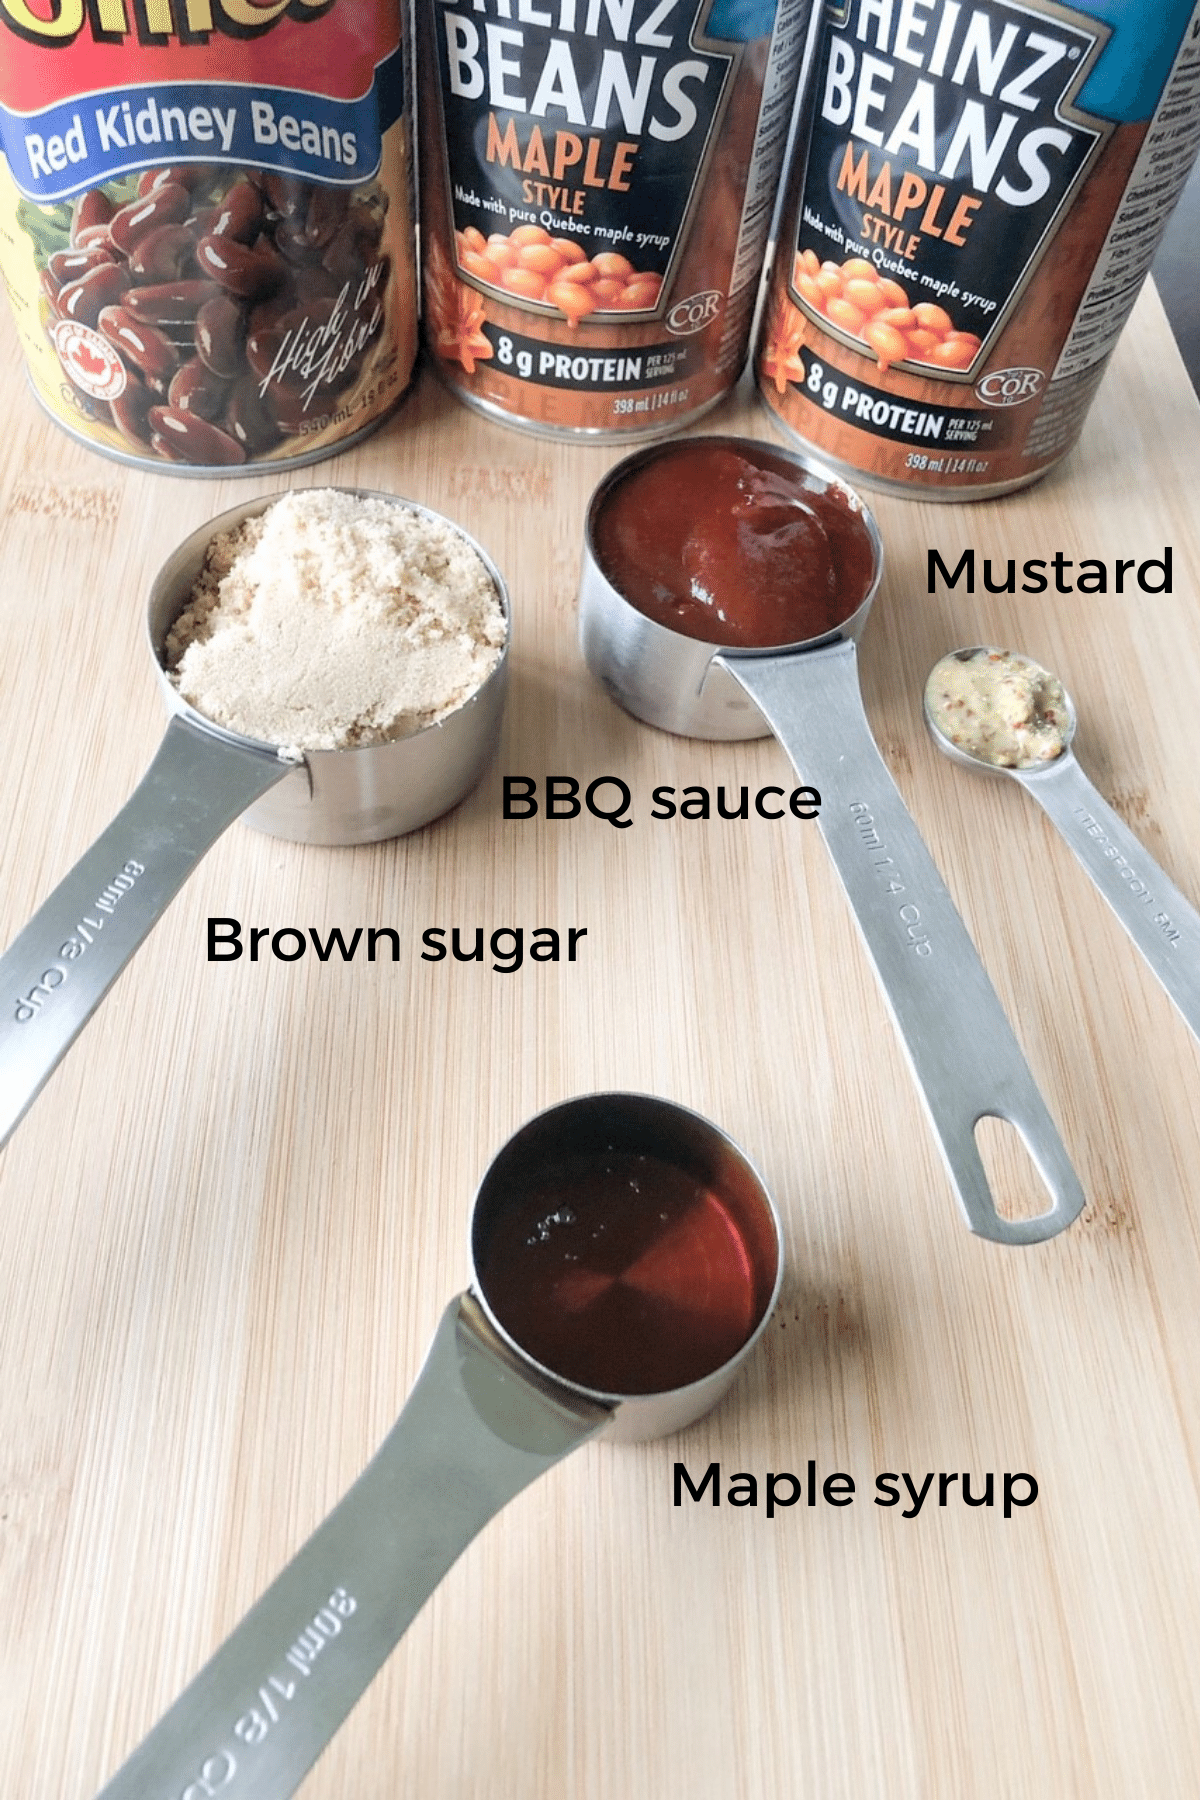 Ingredients needed to make baked beans, bbq sauce, brown sugar, mustard, and brown sugar